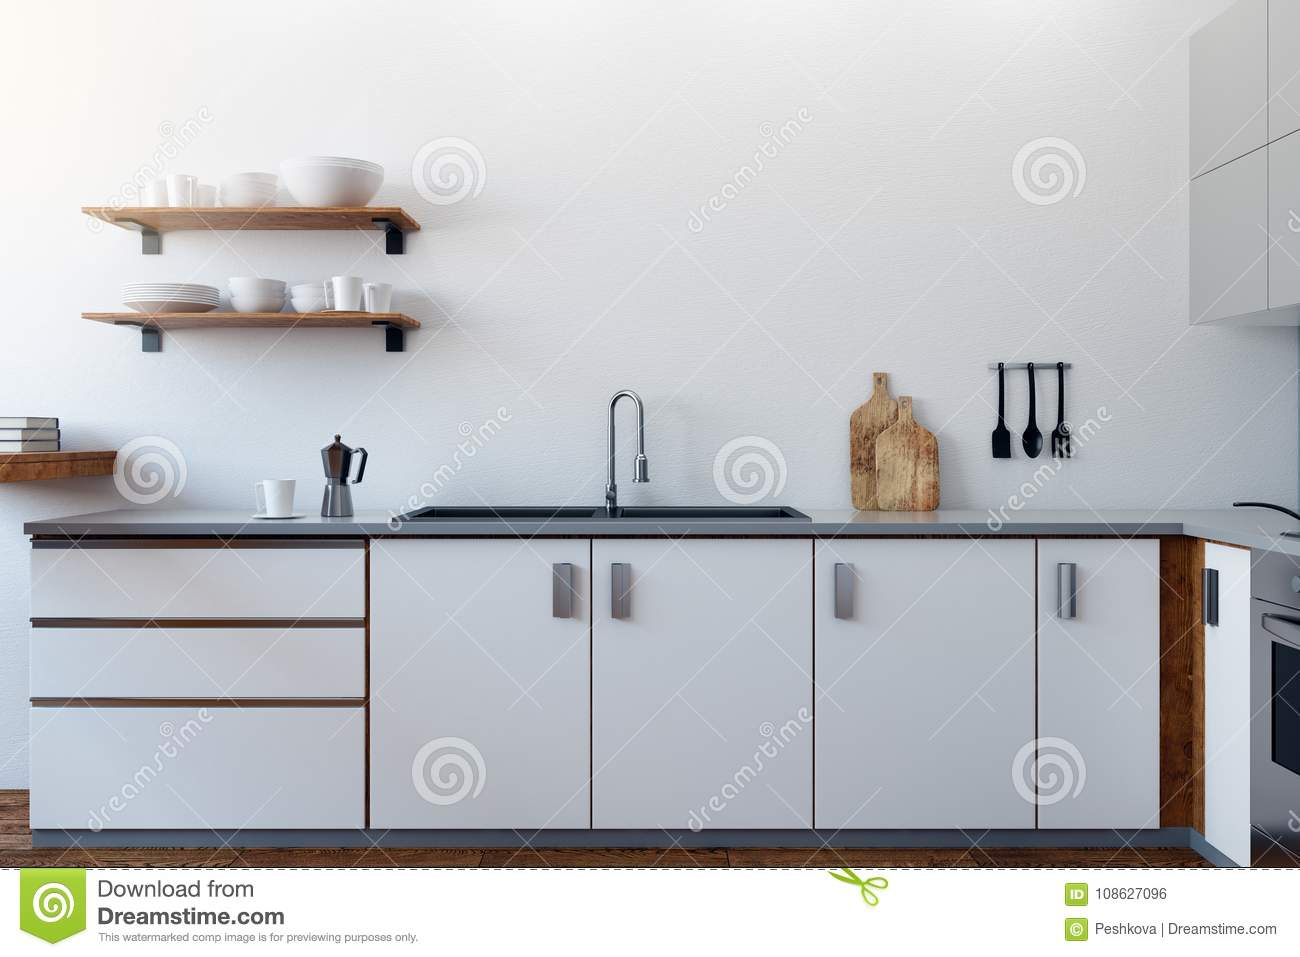 White kitchen interior stock illustration. Illustration of furniture ...